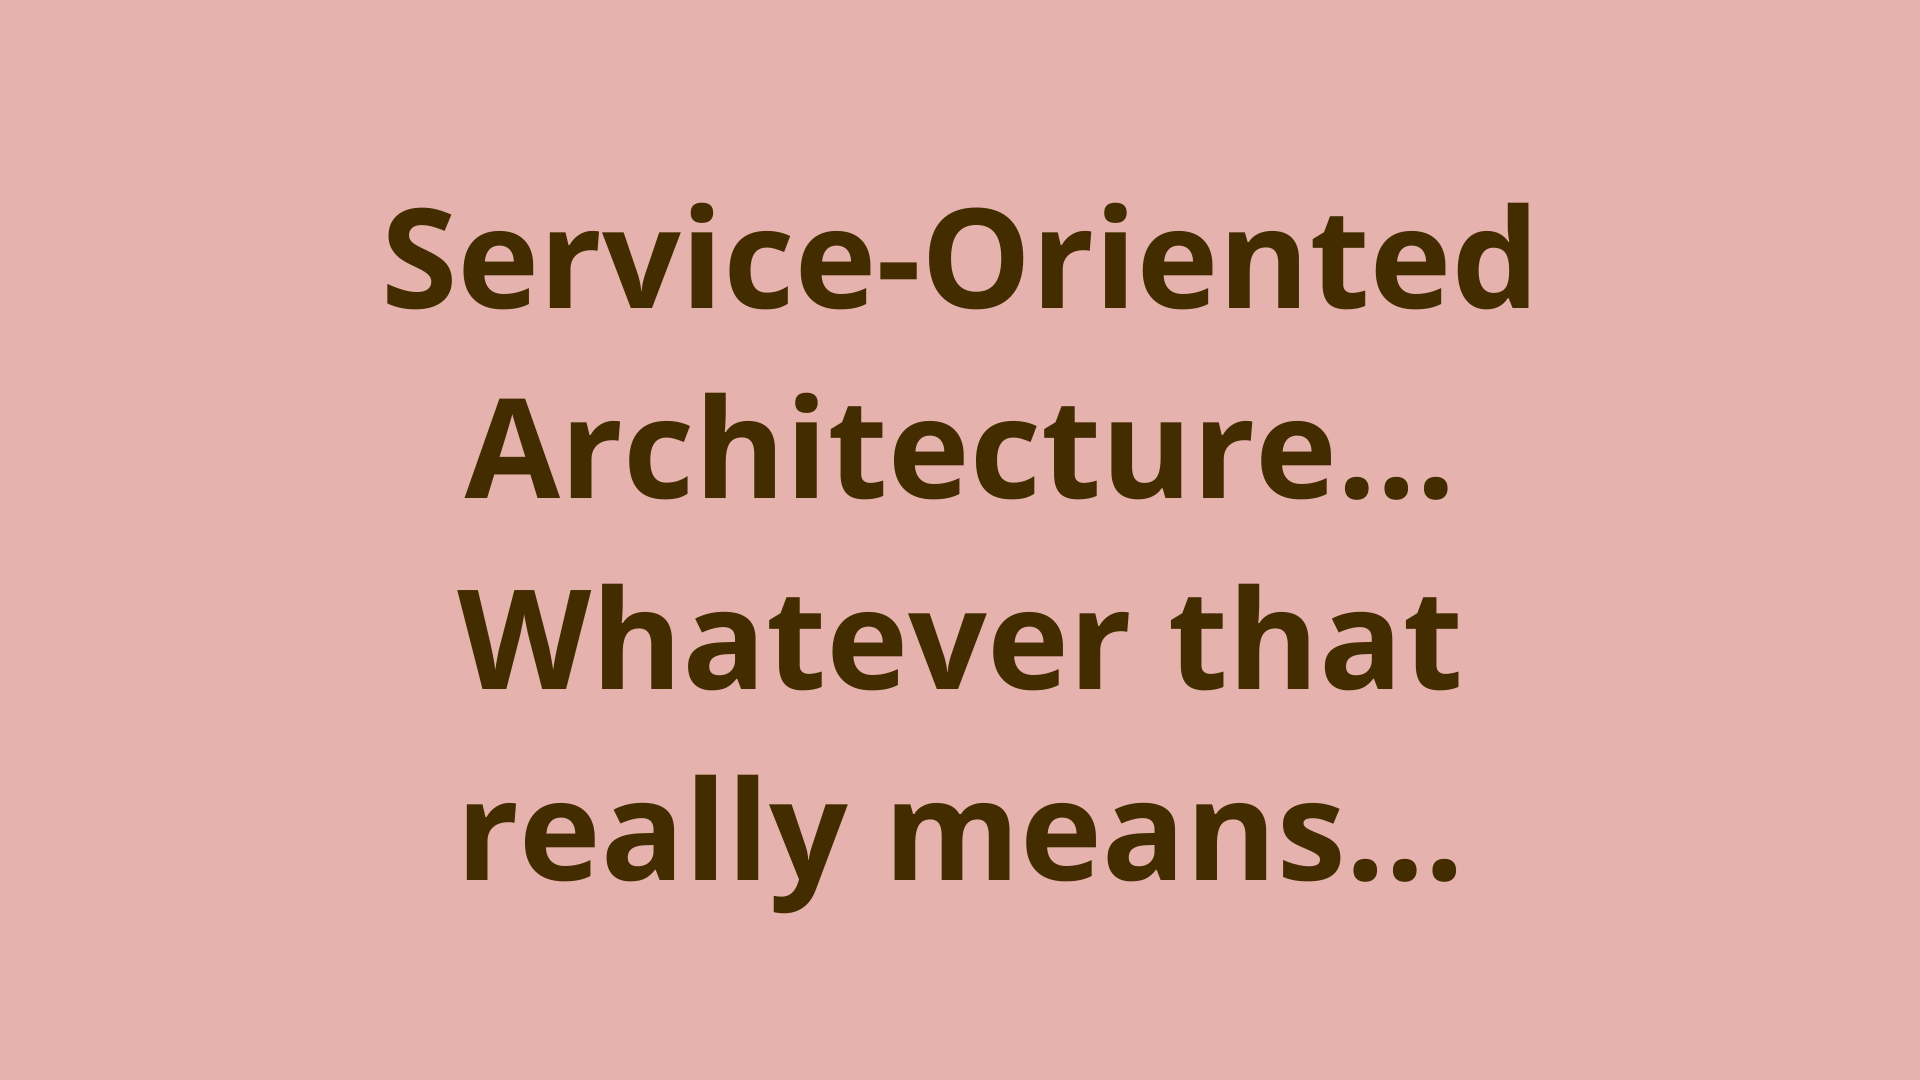 Image of Service-oriented architecture... whatever that really means...